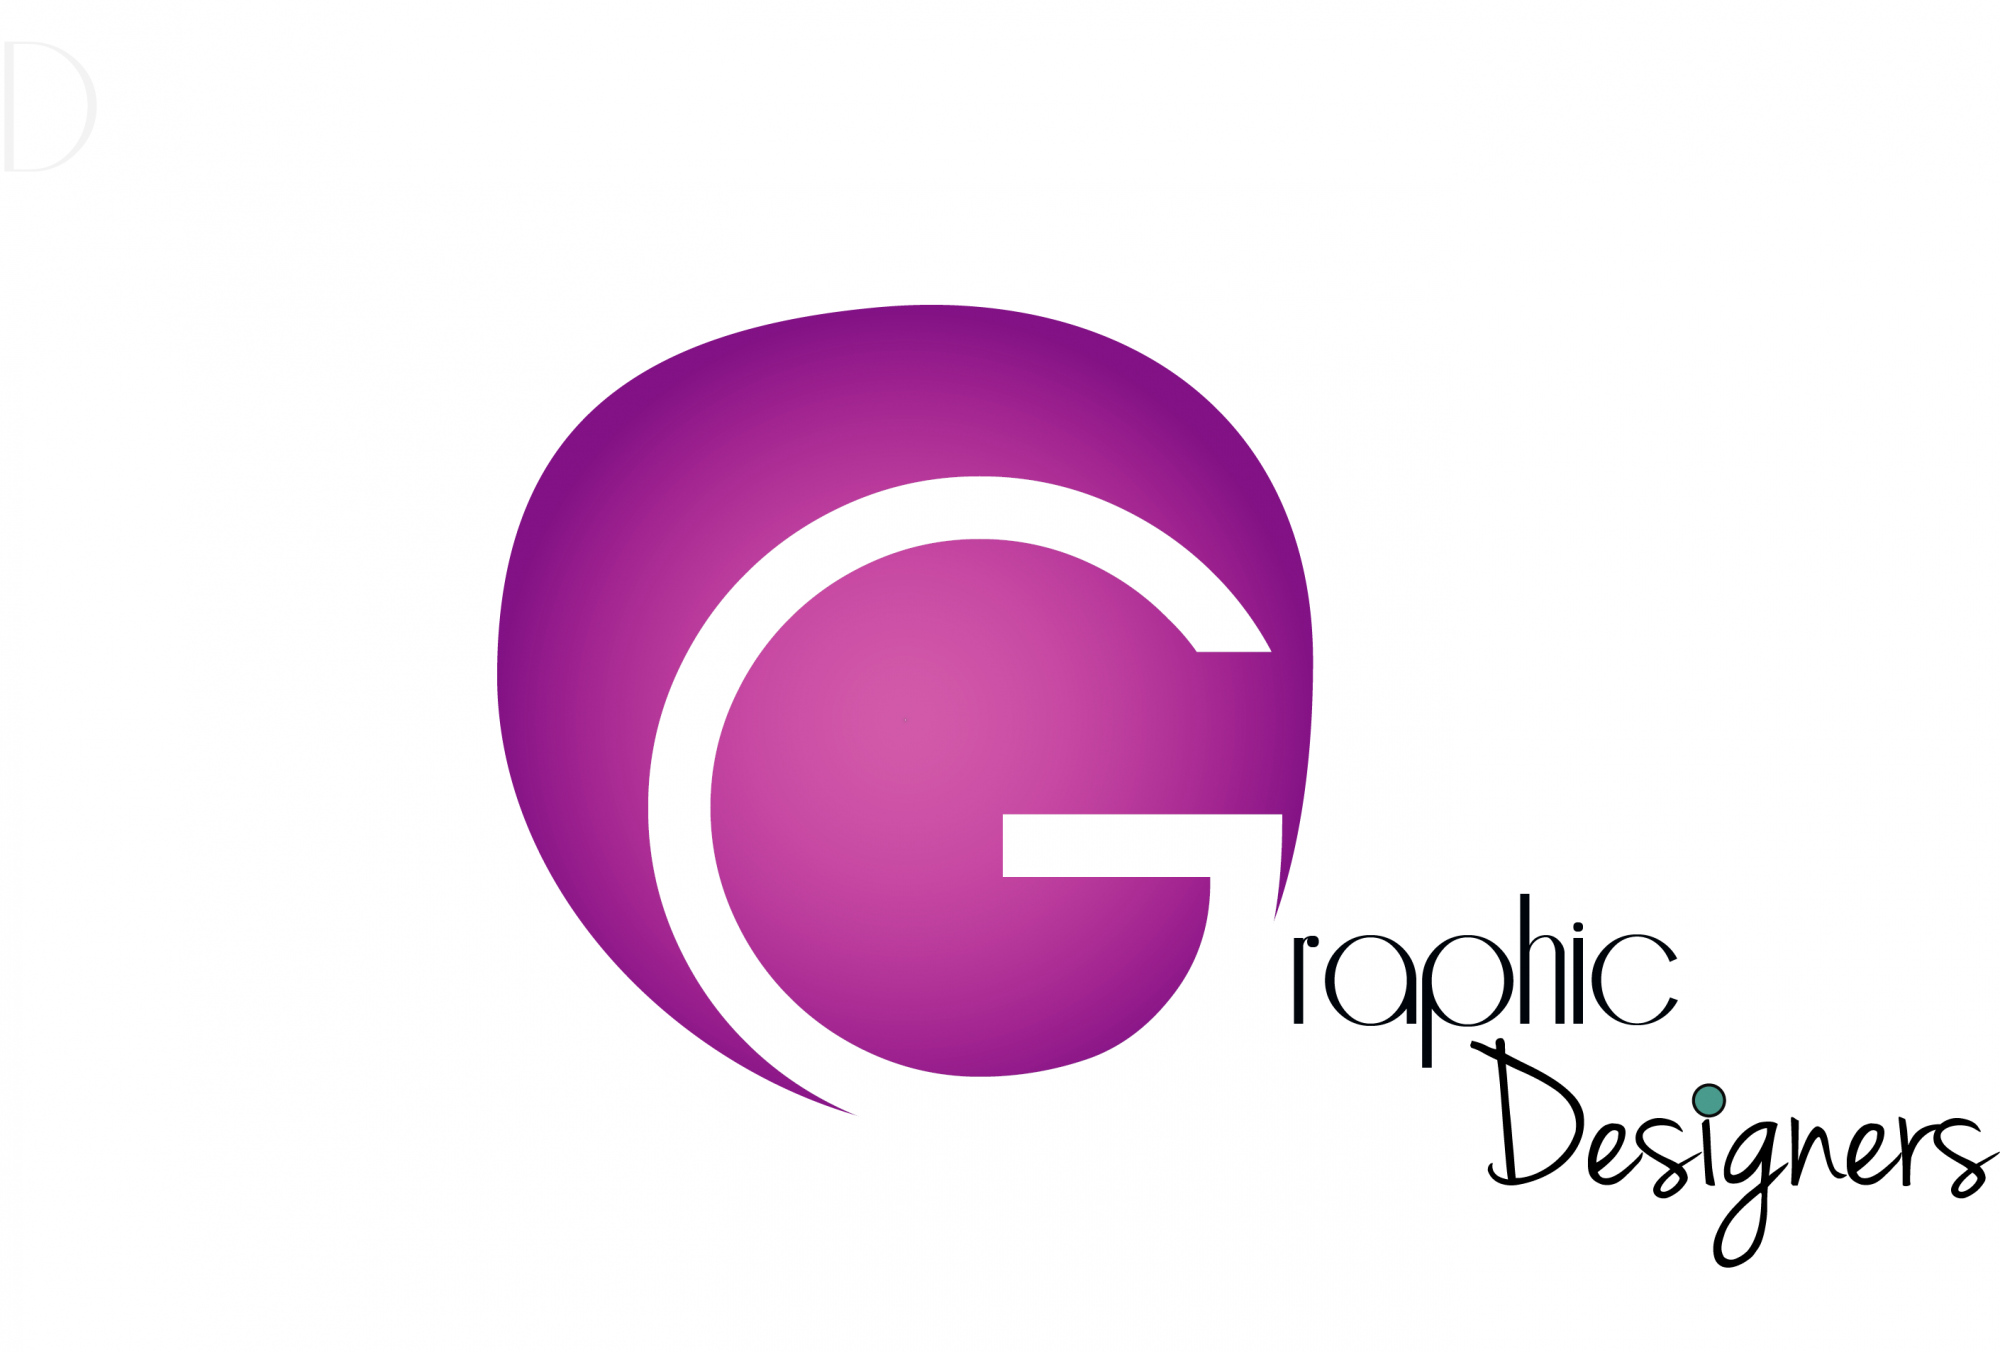 best logo design ideas for graphic designers ideas interior - Graphic Design Logo Ideas